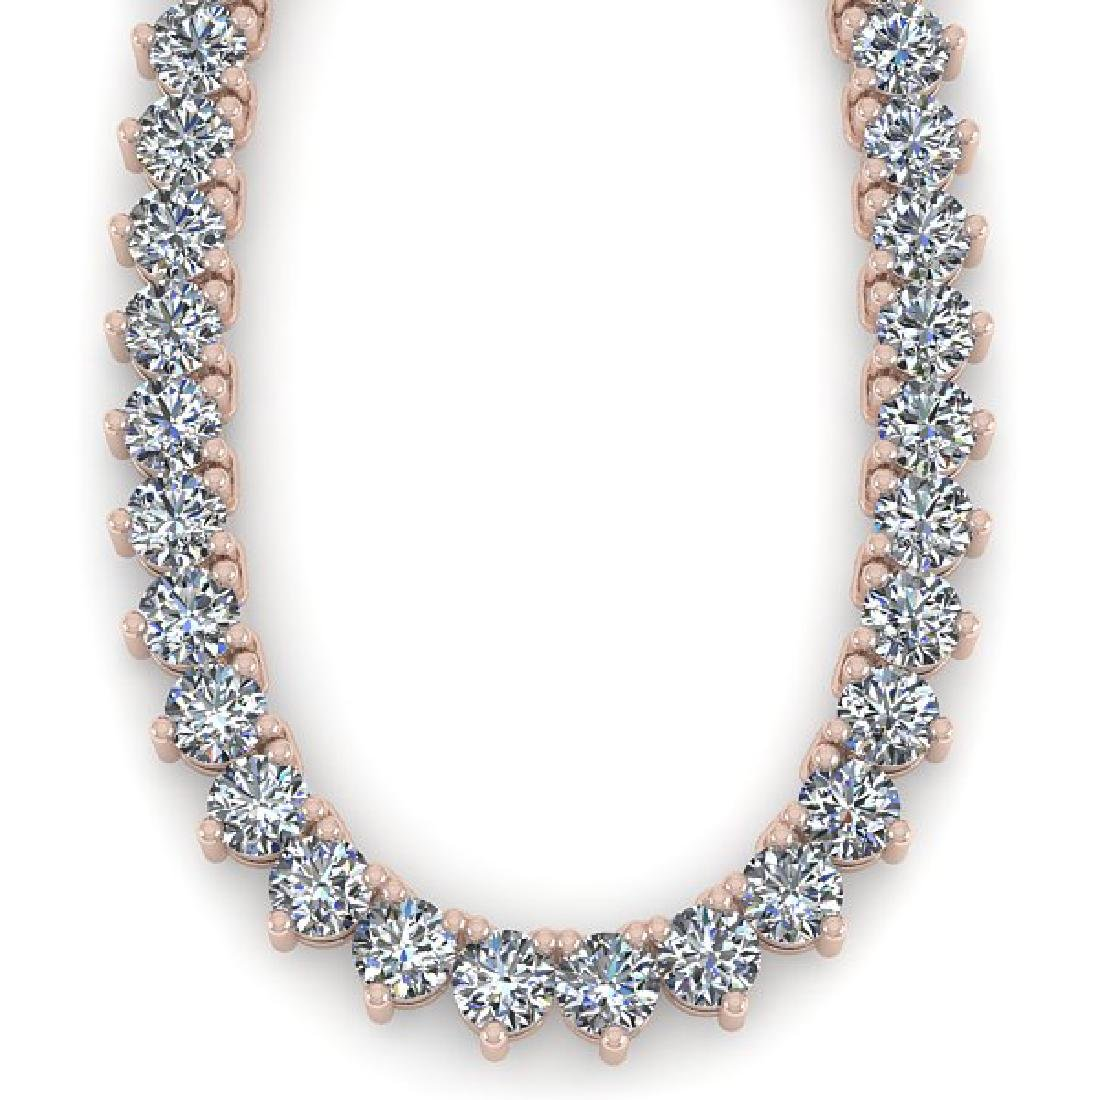 80 CTW Solitaire Certified SI Diamond Necklace 14K Rose - 2